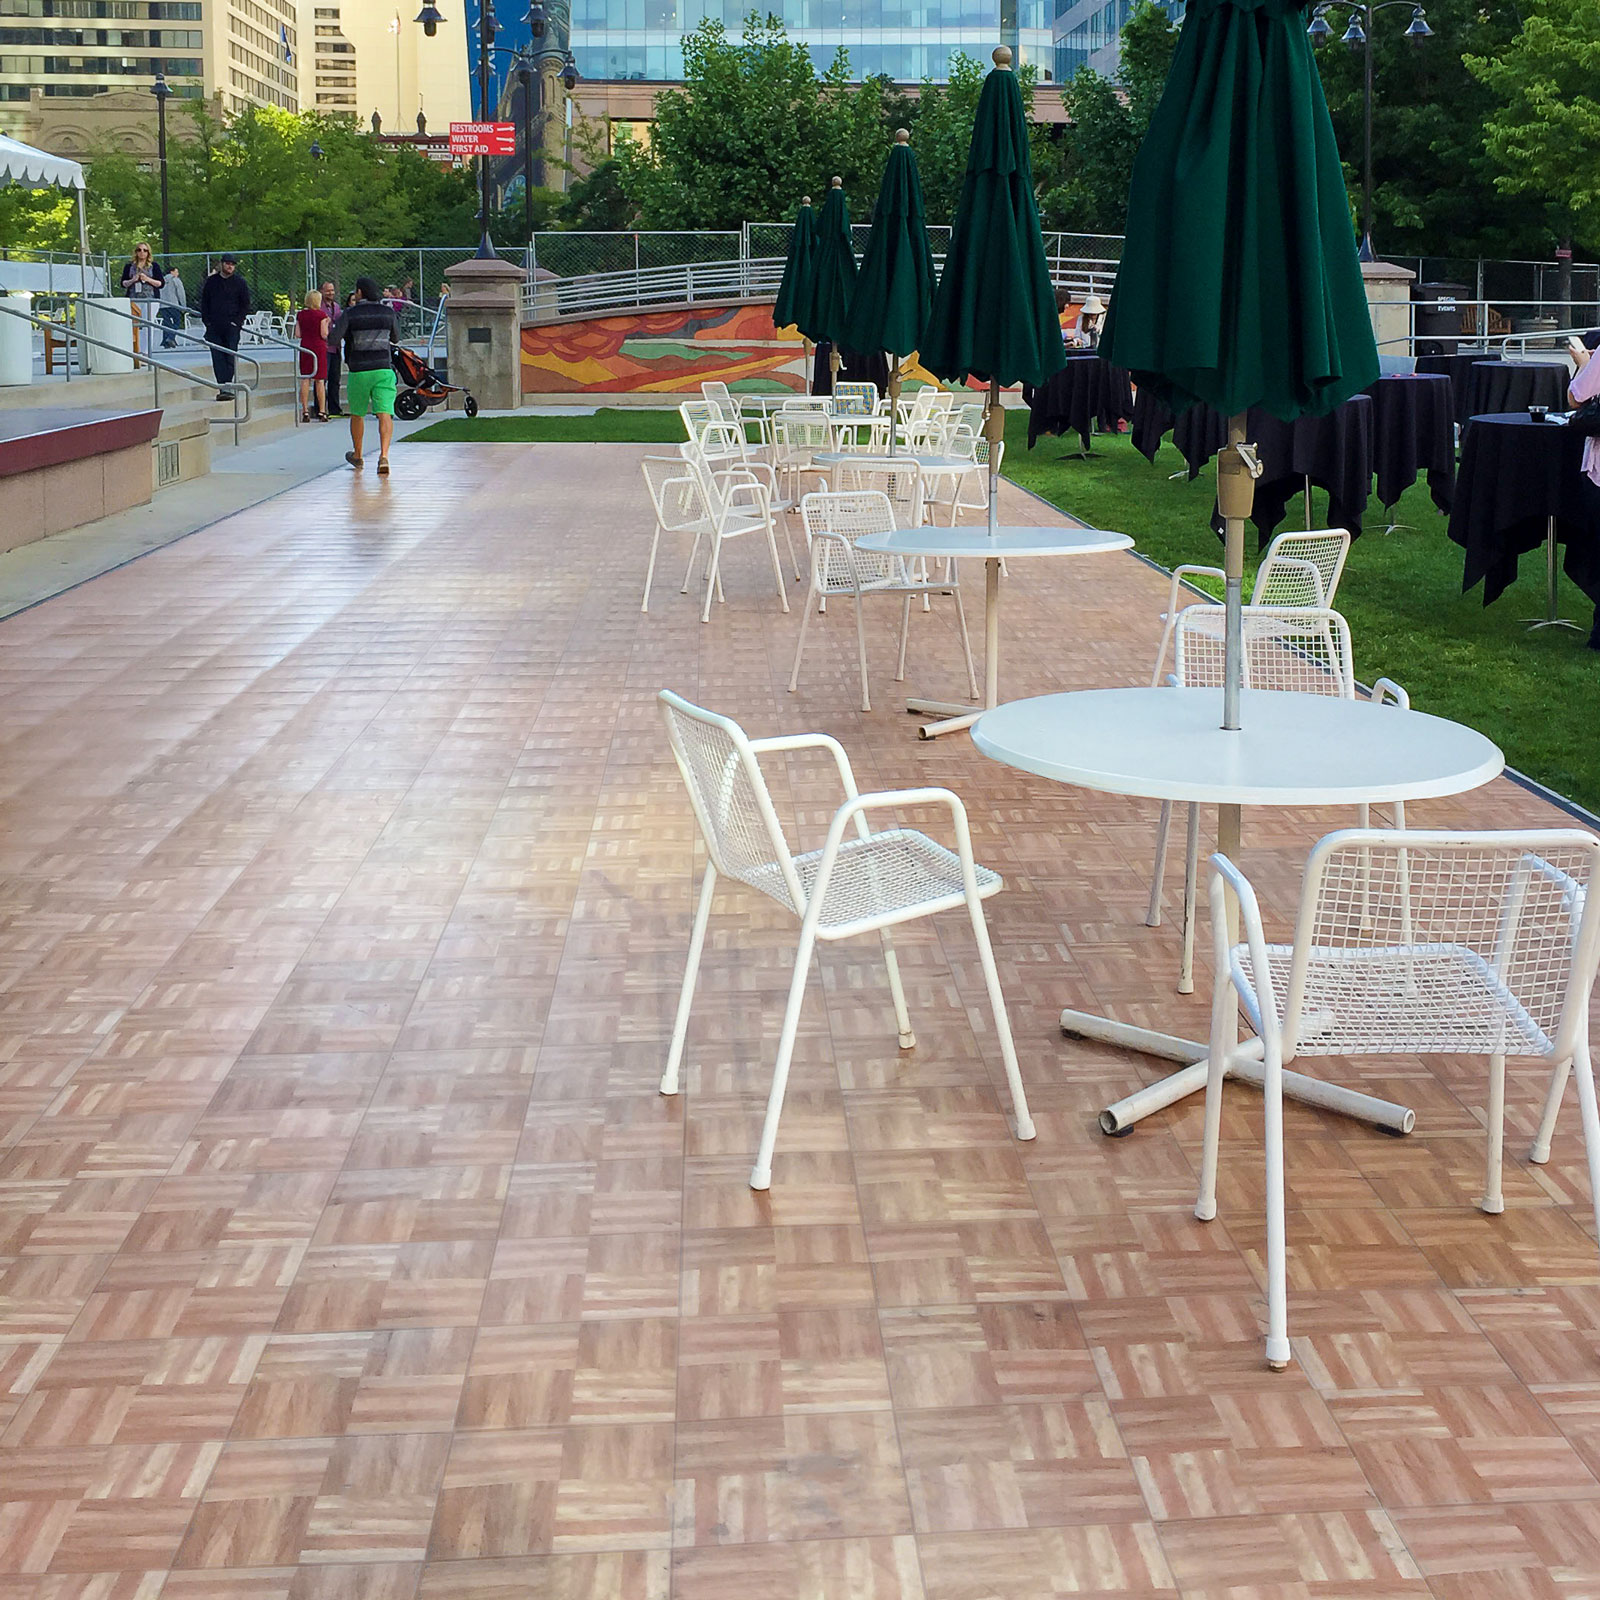 Oak floor set up at the Gallivan Center